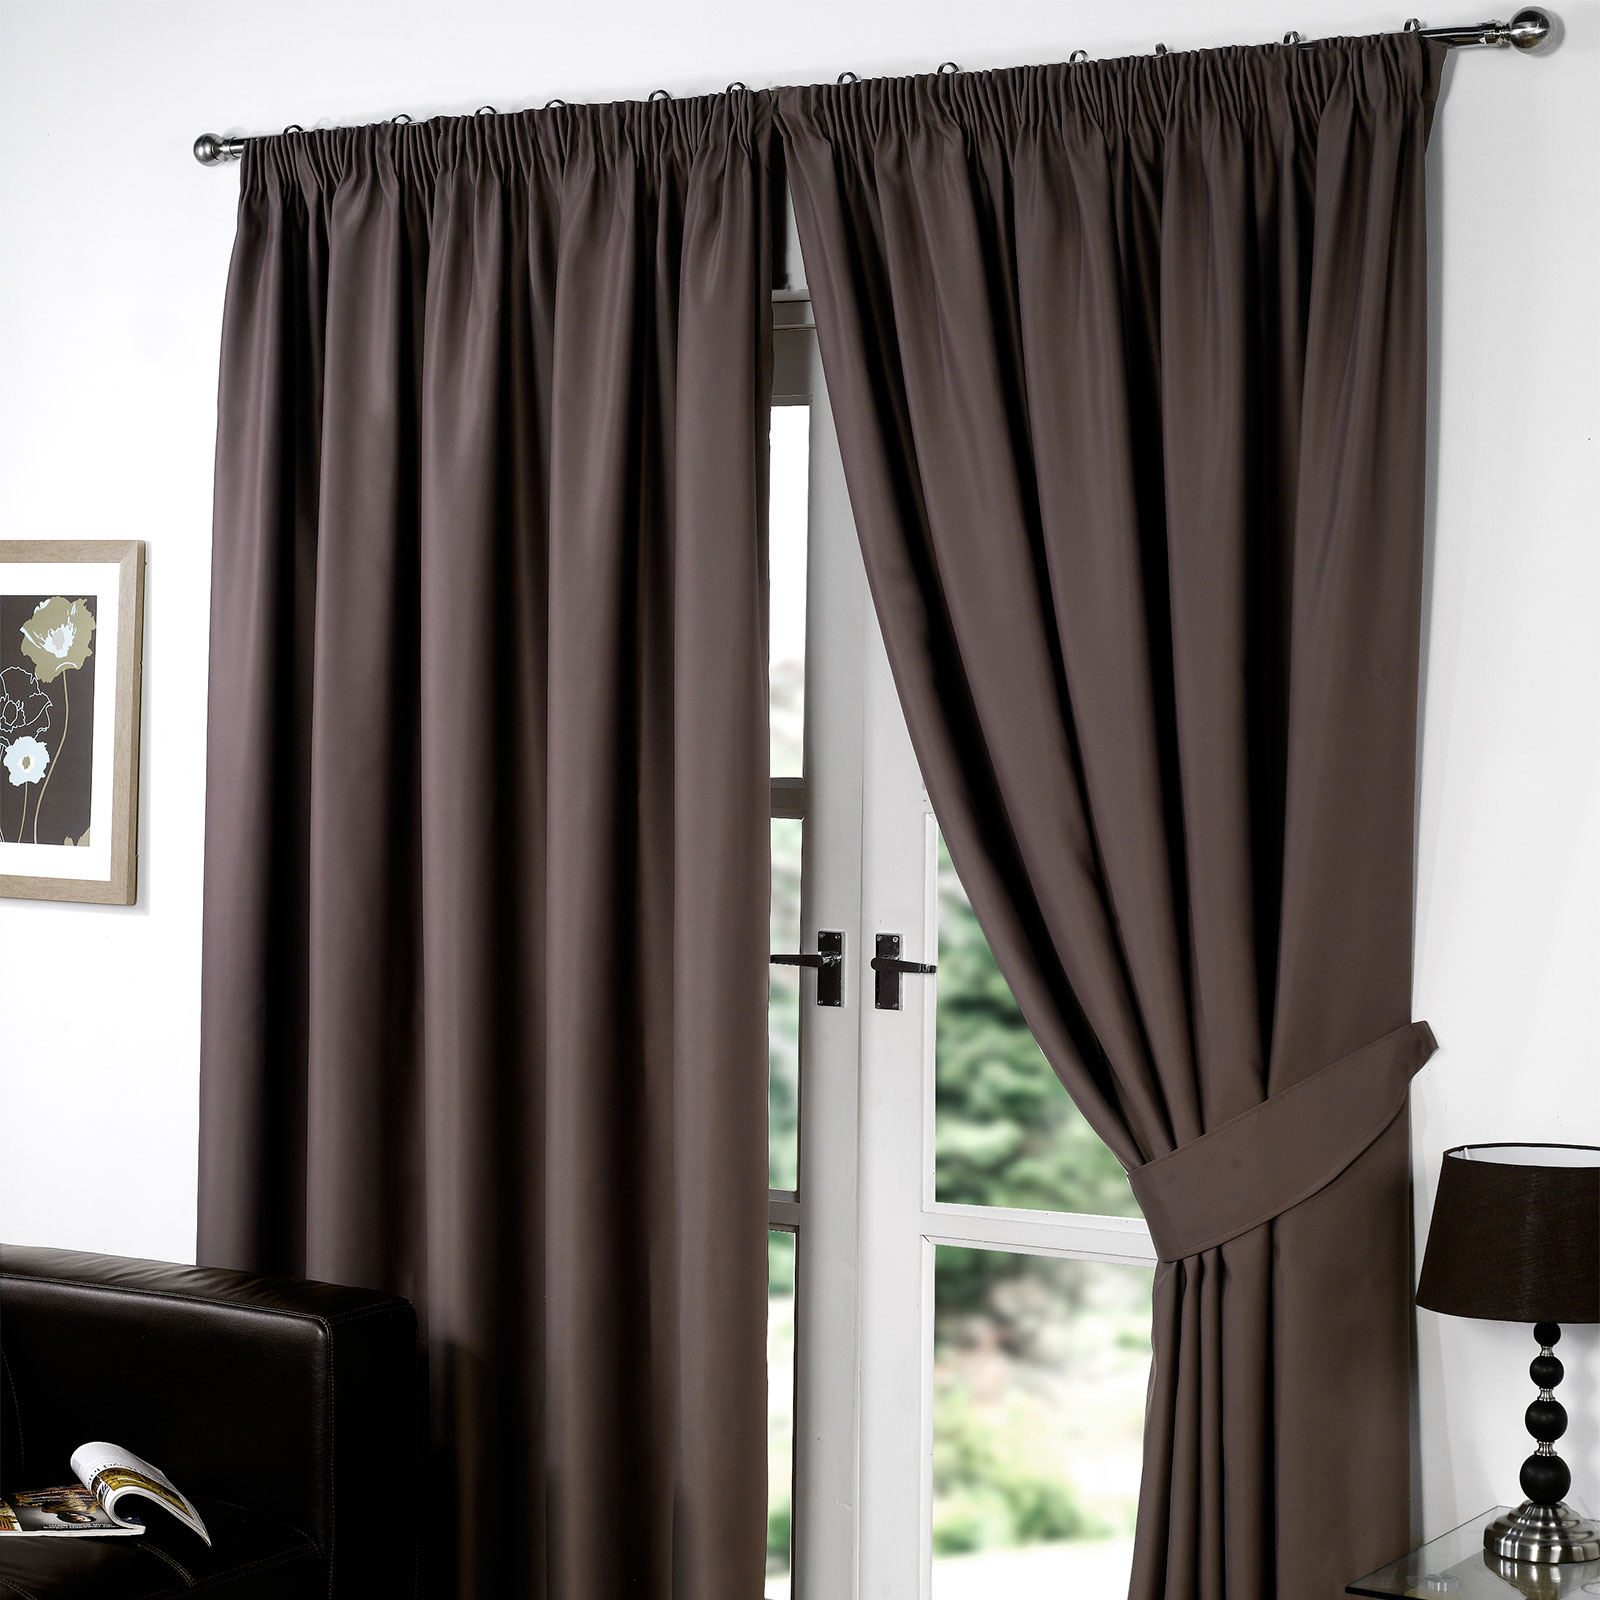 Dreamscene-Thermal-Pencil-Pleat-PAIR-of-Blackout-Curtains-